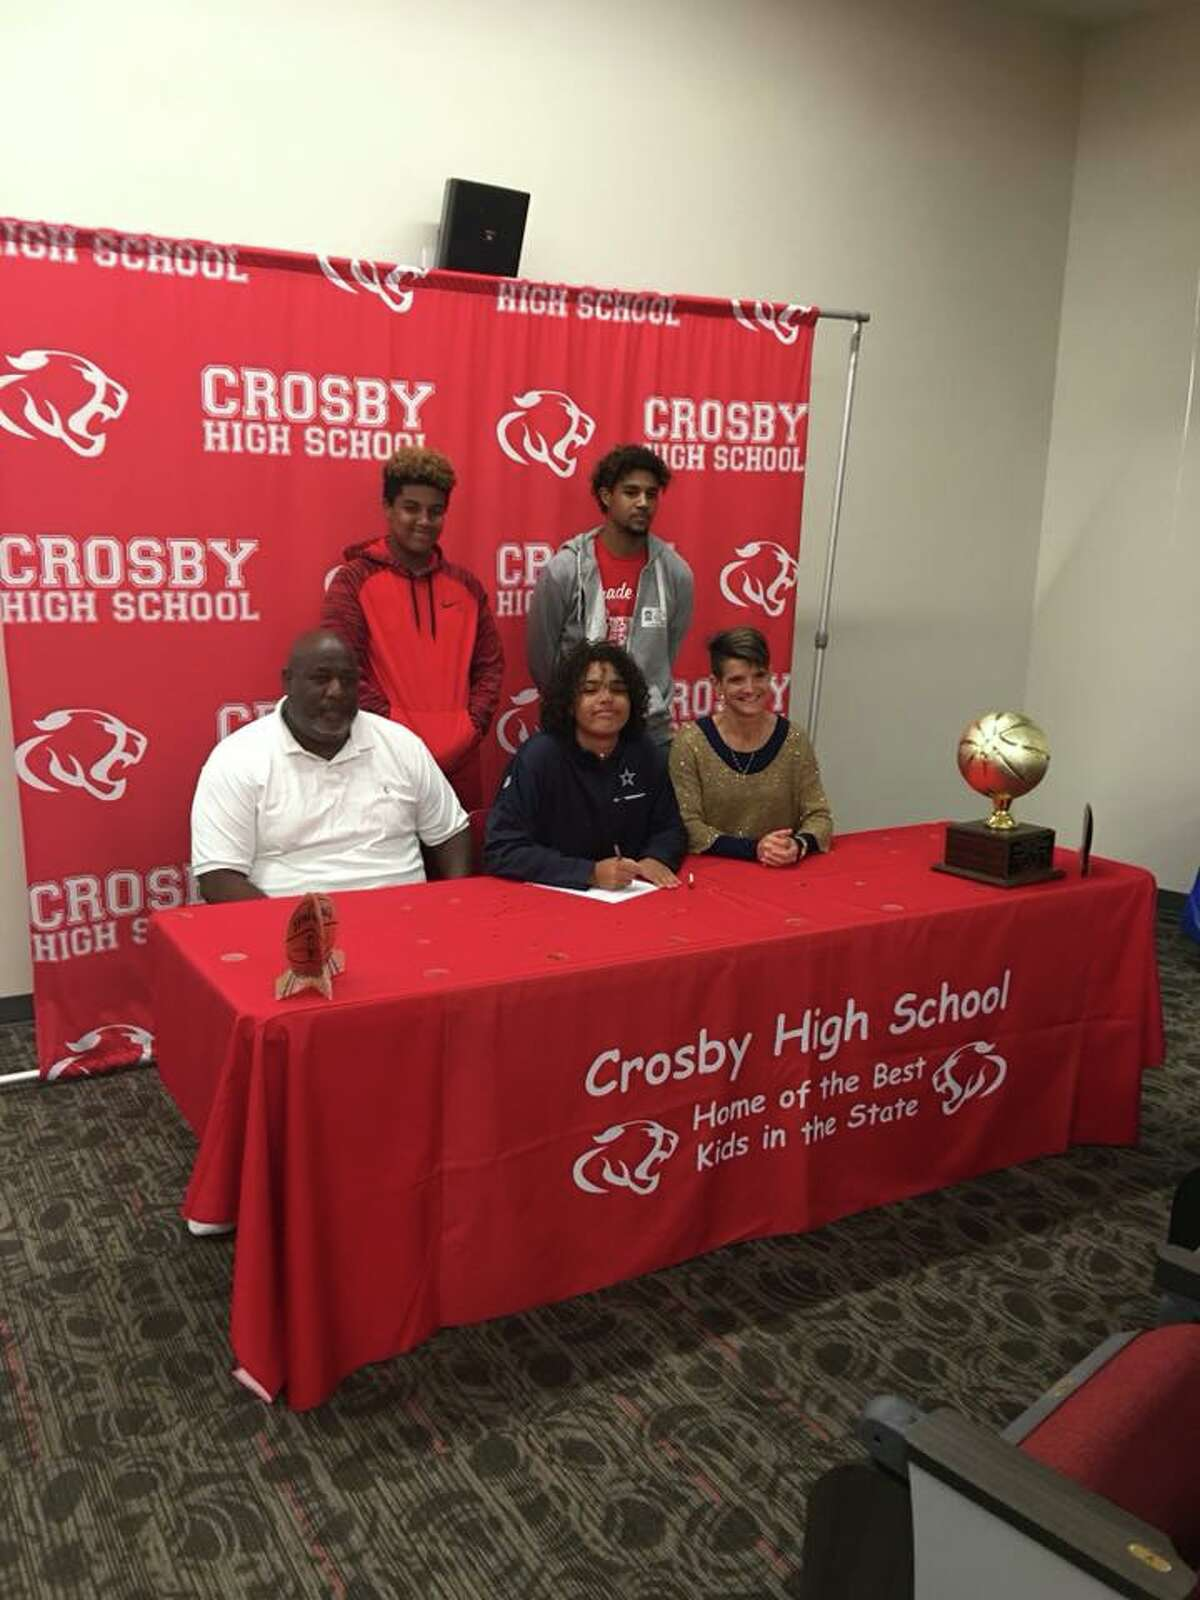 Crosby girls basketball player Sloan Casey (center) signs her scholarship letter to play basketball for Texas A&M-Commerce